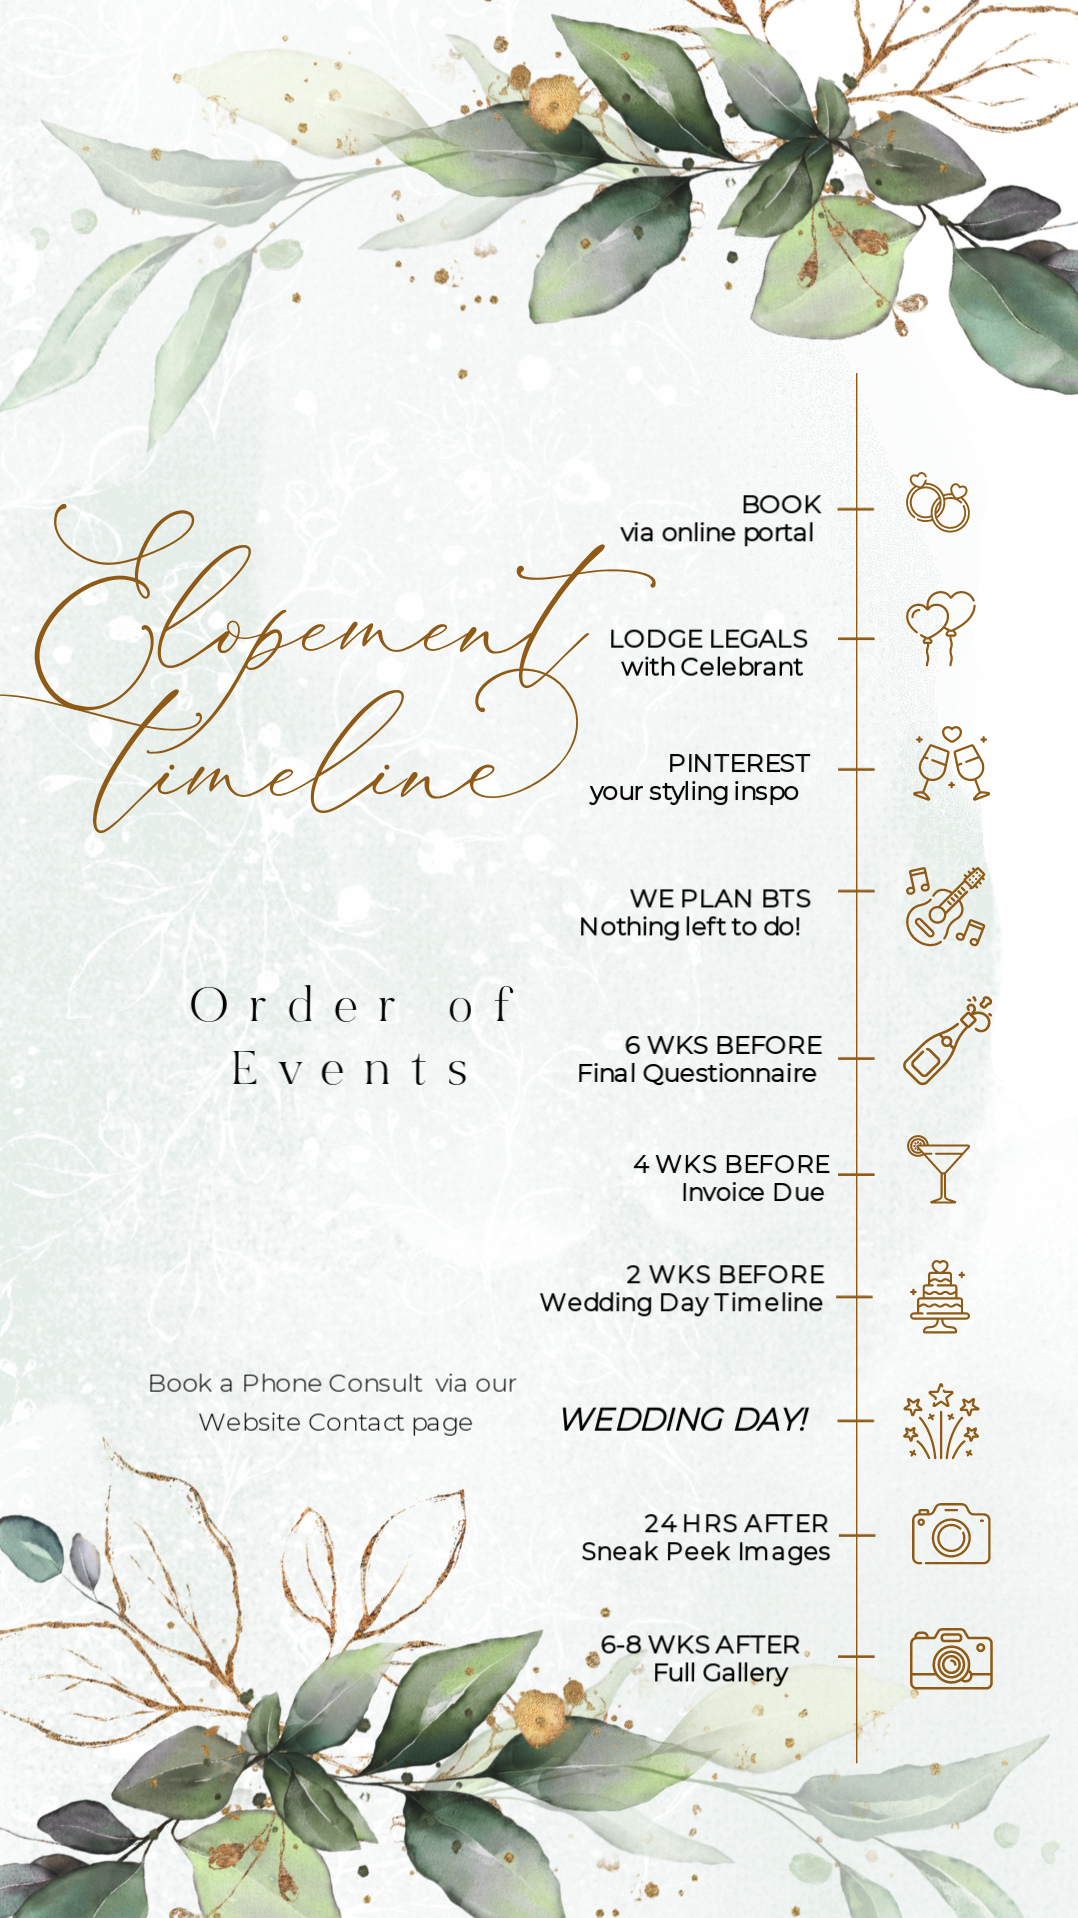 Luxe Elopements Order of Events